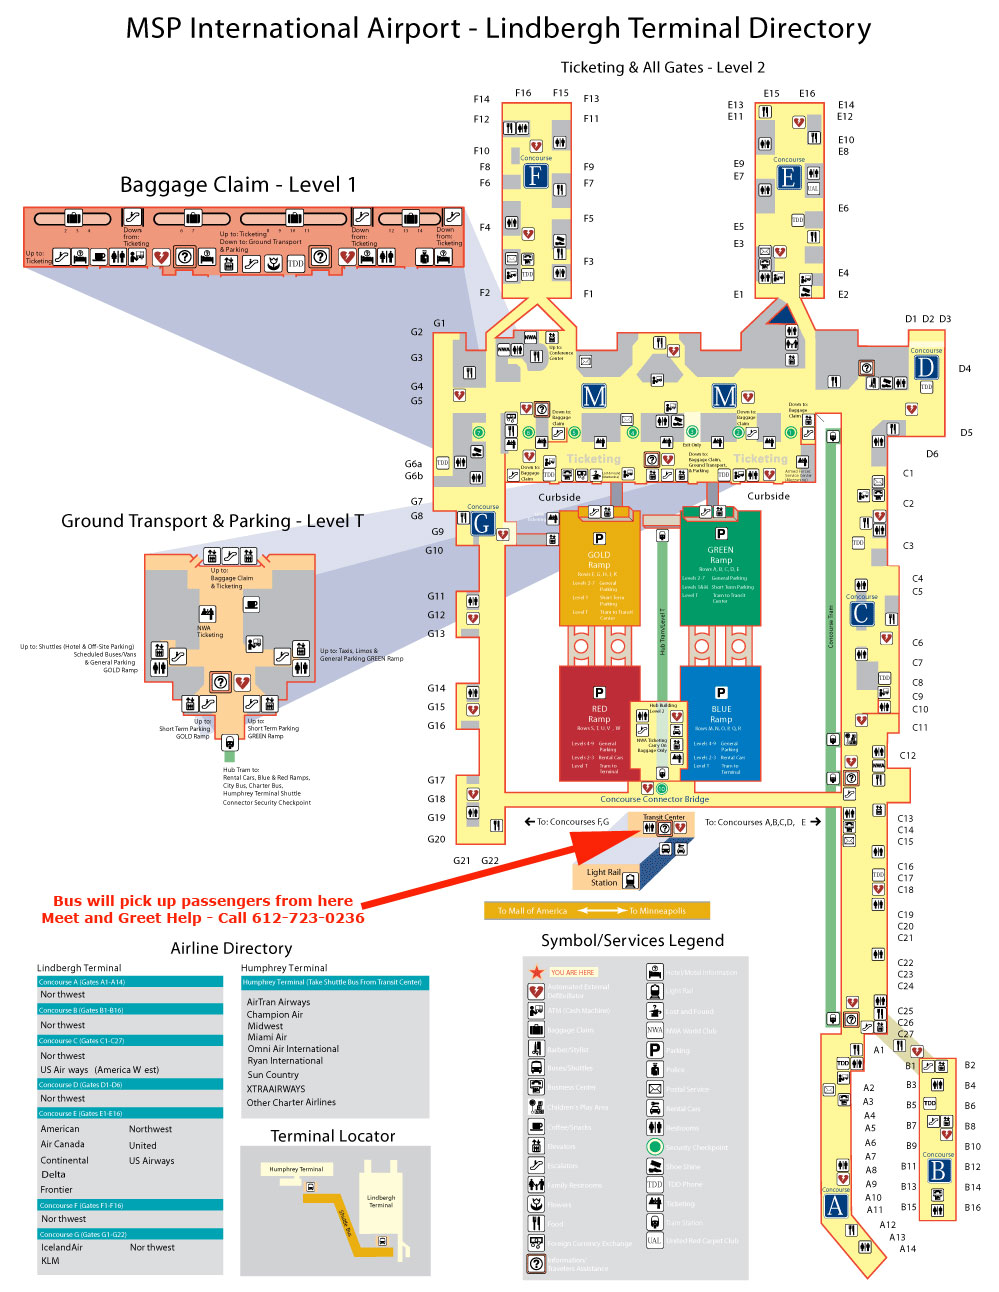 msp parking map with Travelinfo on Minneapolis Map in addition Interactive Map in addition Minneapolis St Paul MSP Airport Terminal Map moreover Minneapolis Airport Map furthermore Cartes Pays.